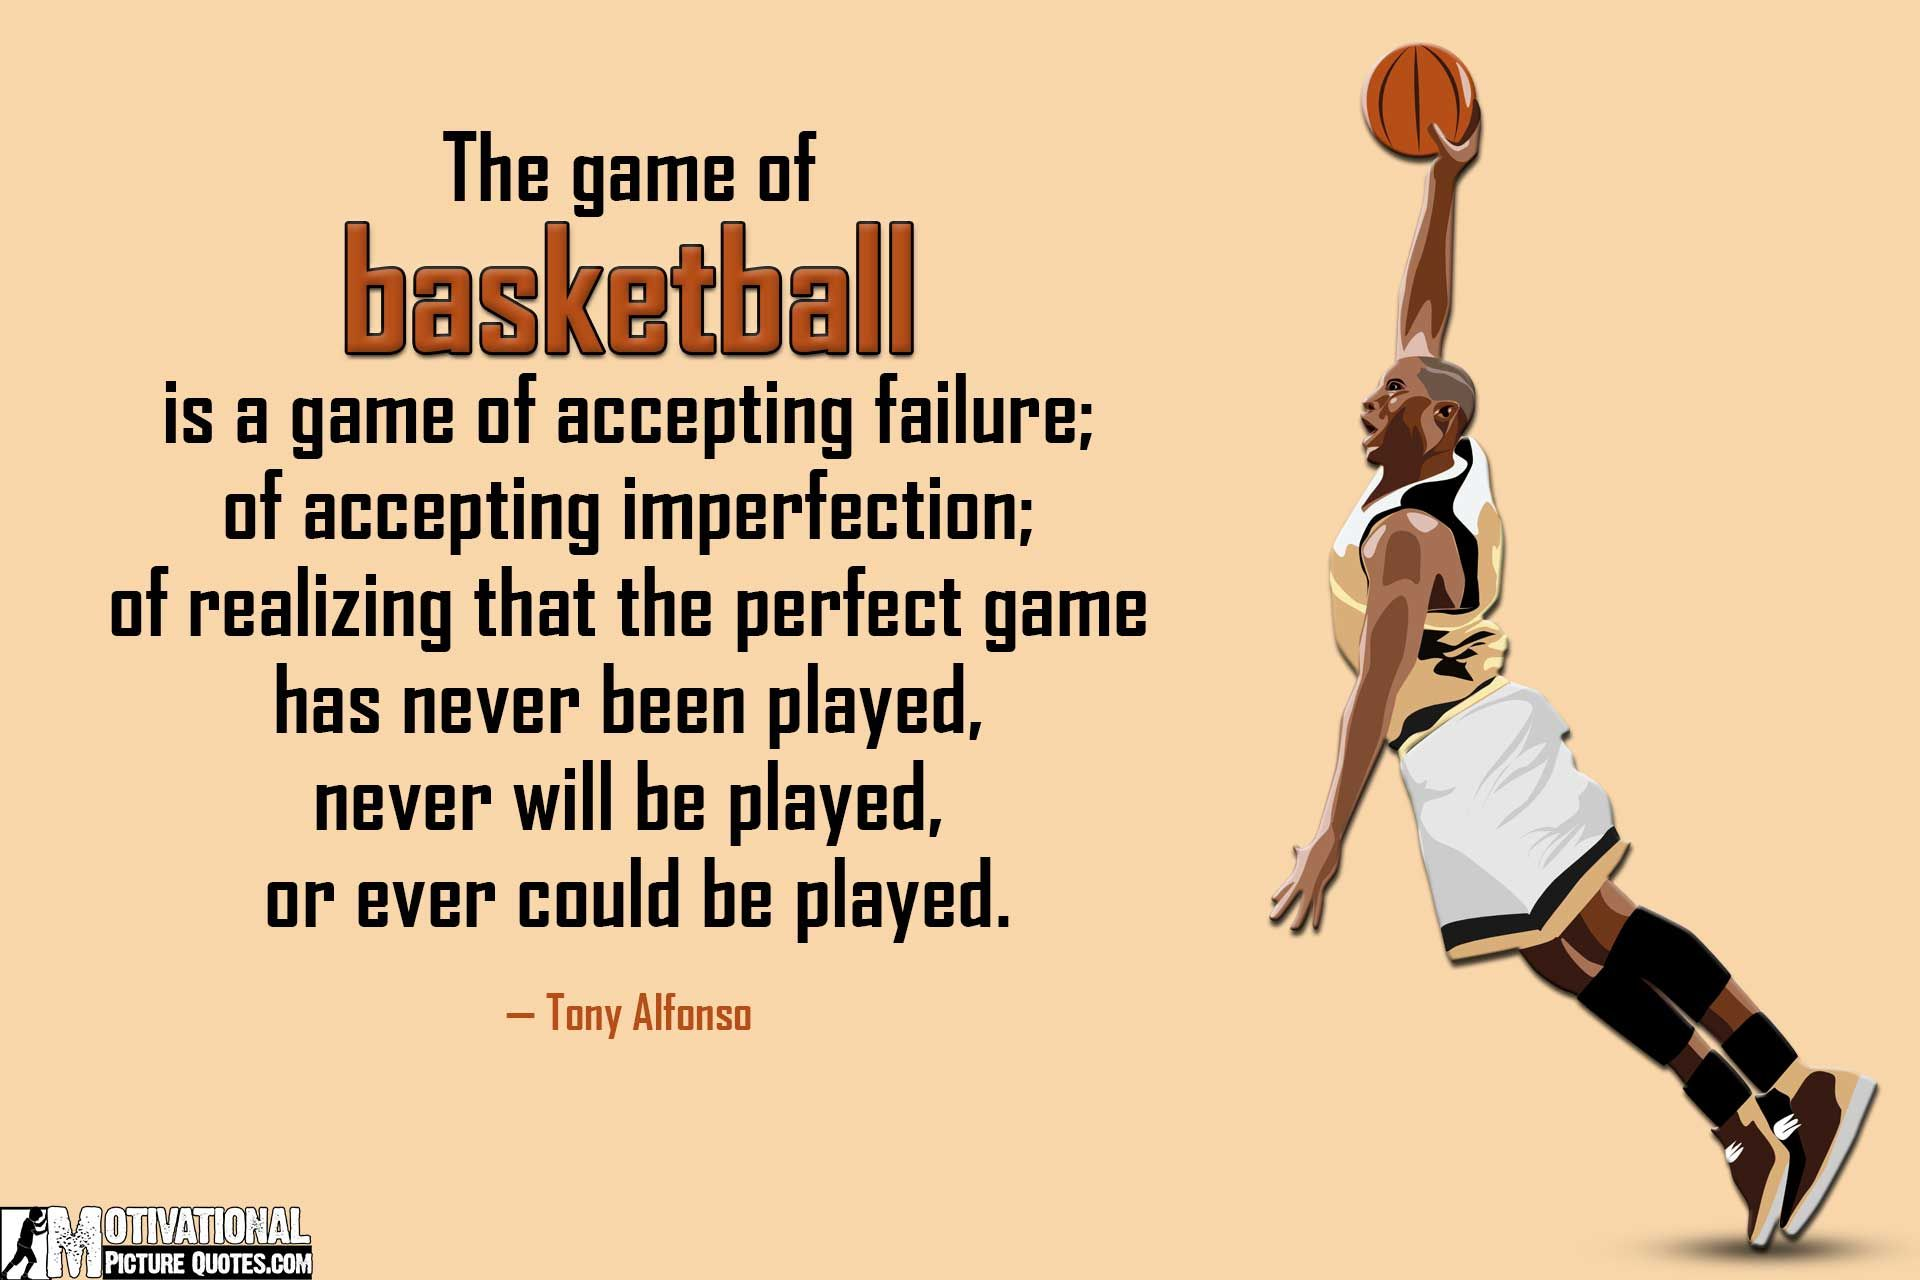 Inspirational Basketball Quotes Brilliant Omg 96 Inspirational Quotes And Wallpapers That Makes A Difference . Design Ideas